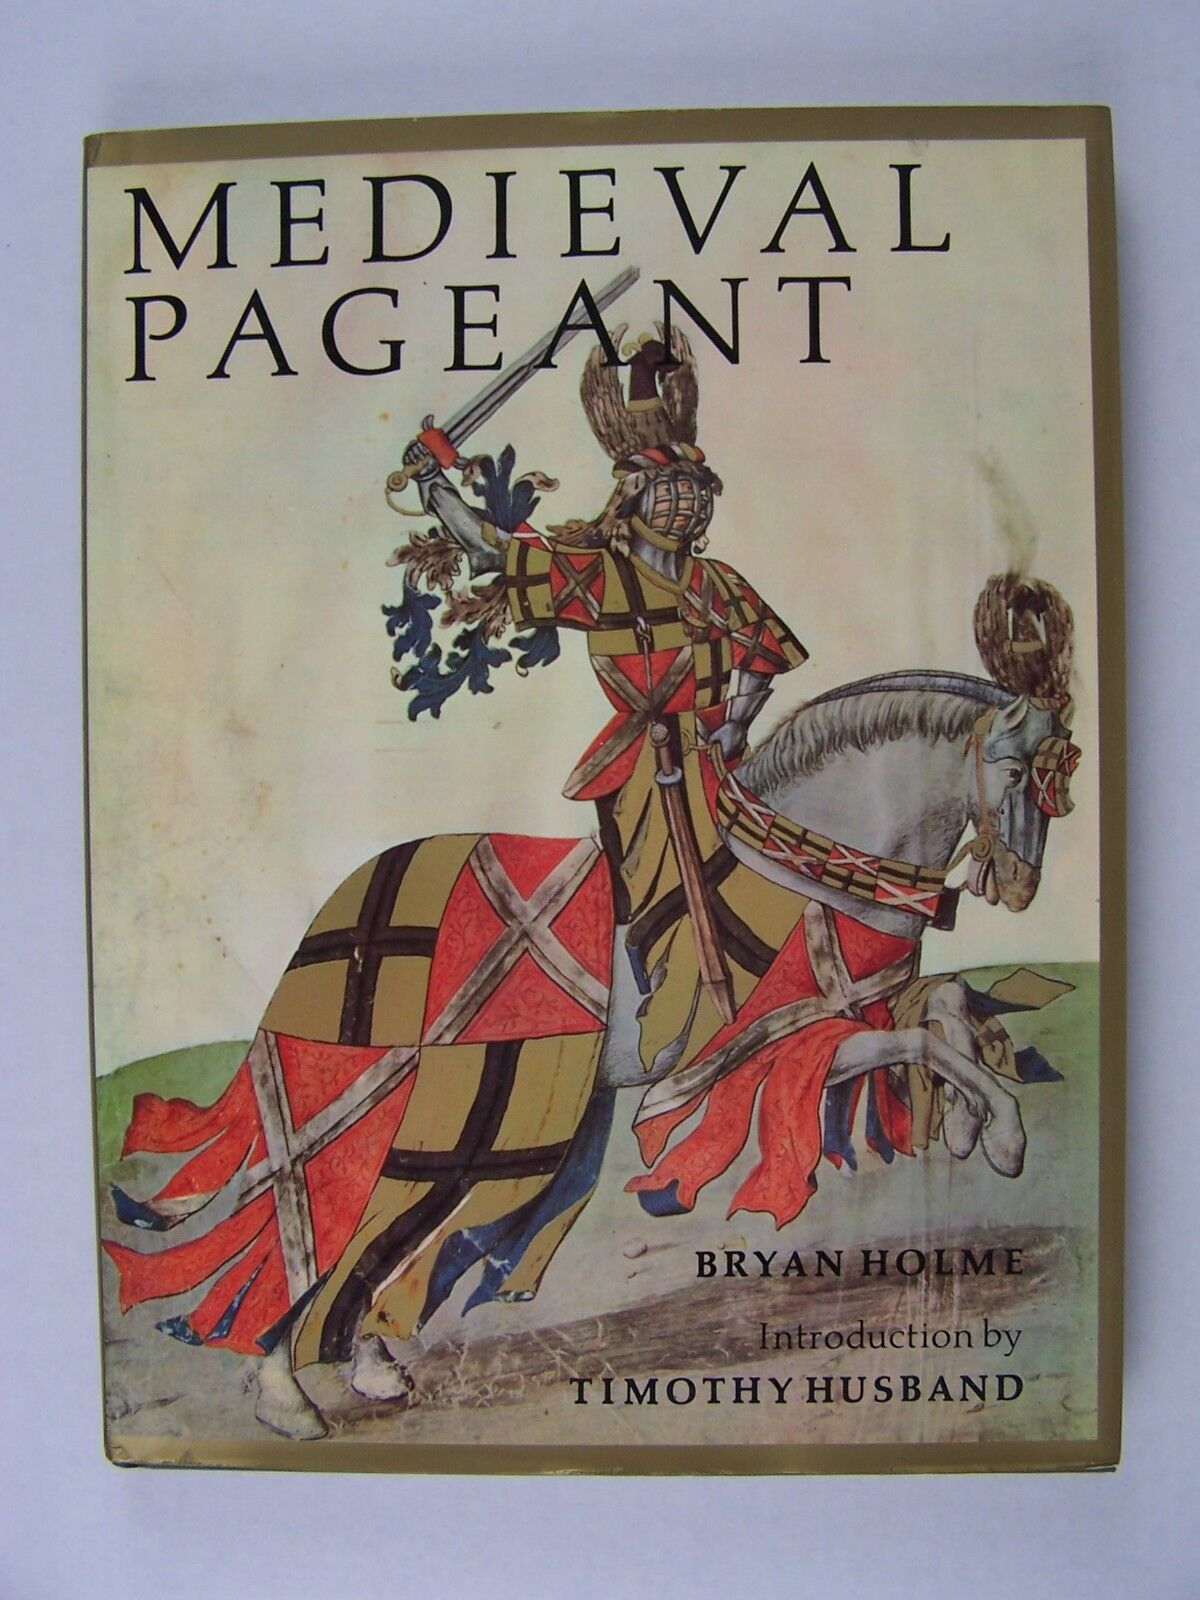 Medieval Pageant Hardcover by Bryan Holme 9780500014219